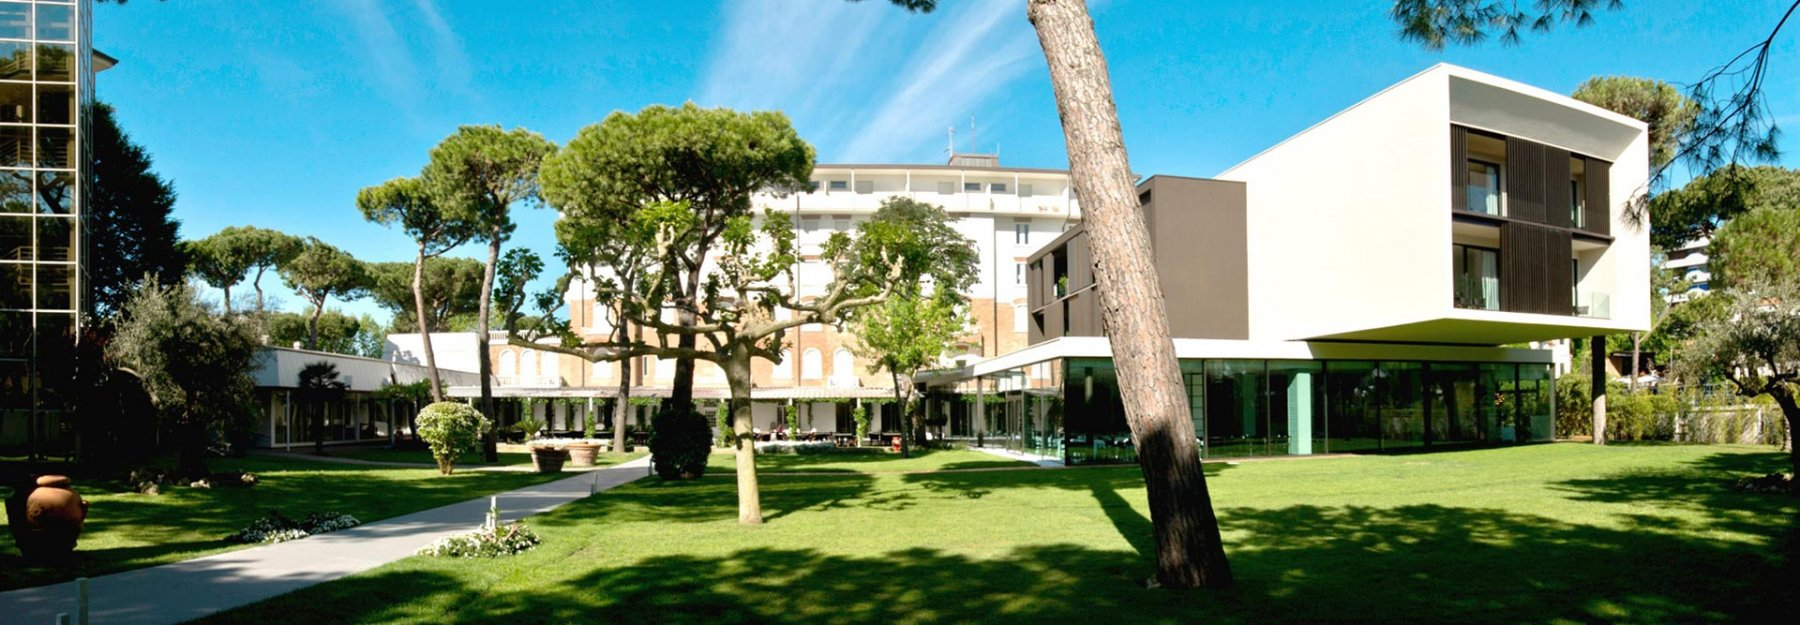 Marepineta resort family hotel e resort per bambini a for Hotel a milano marittima